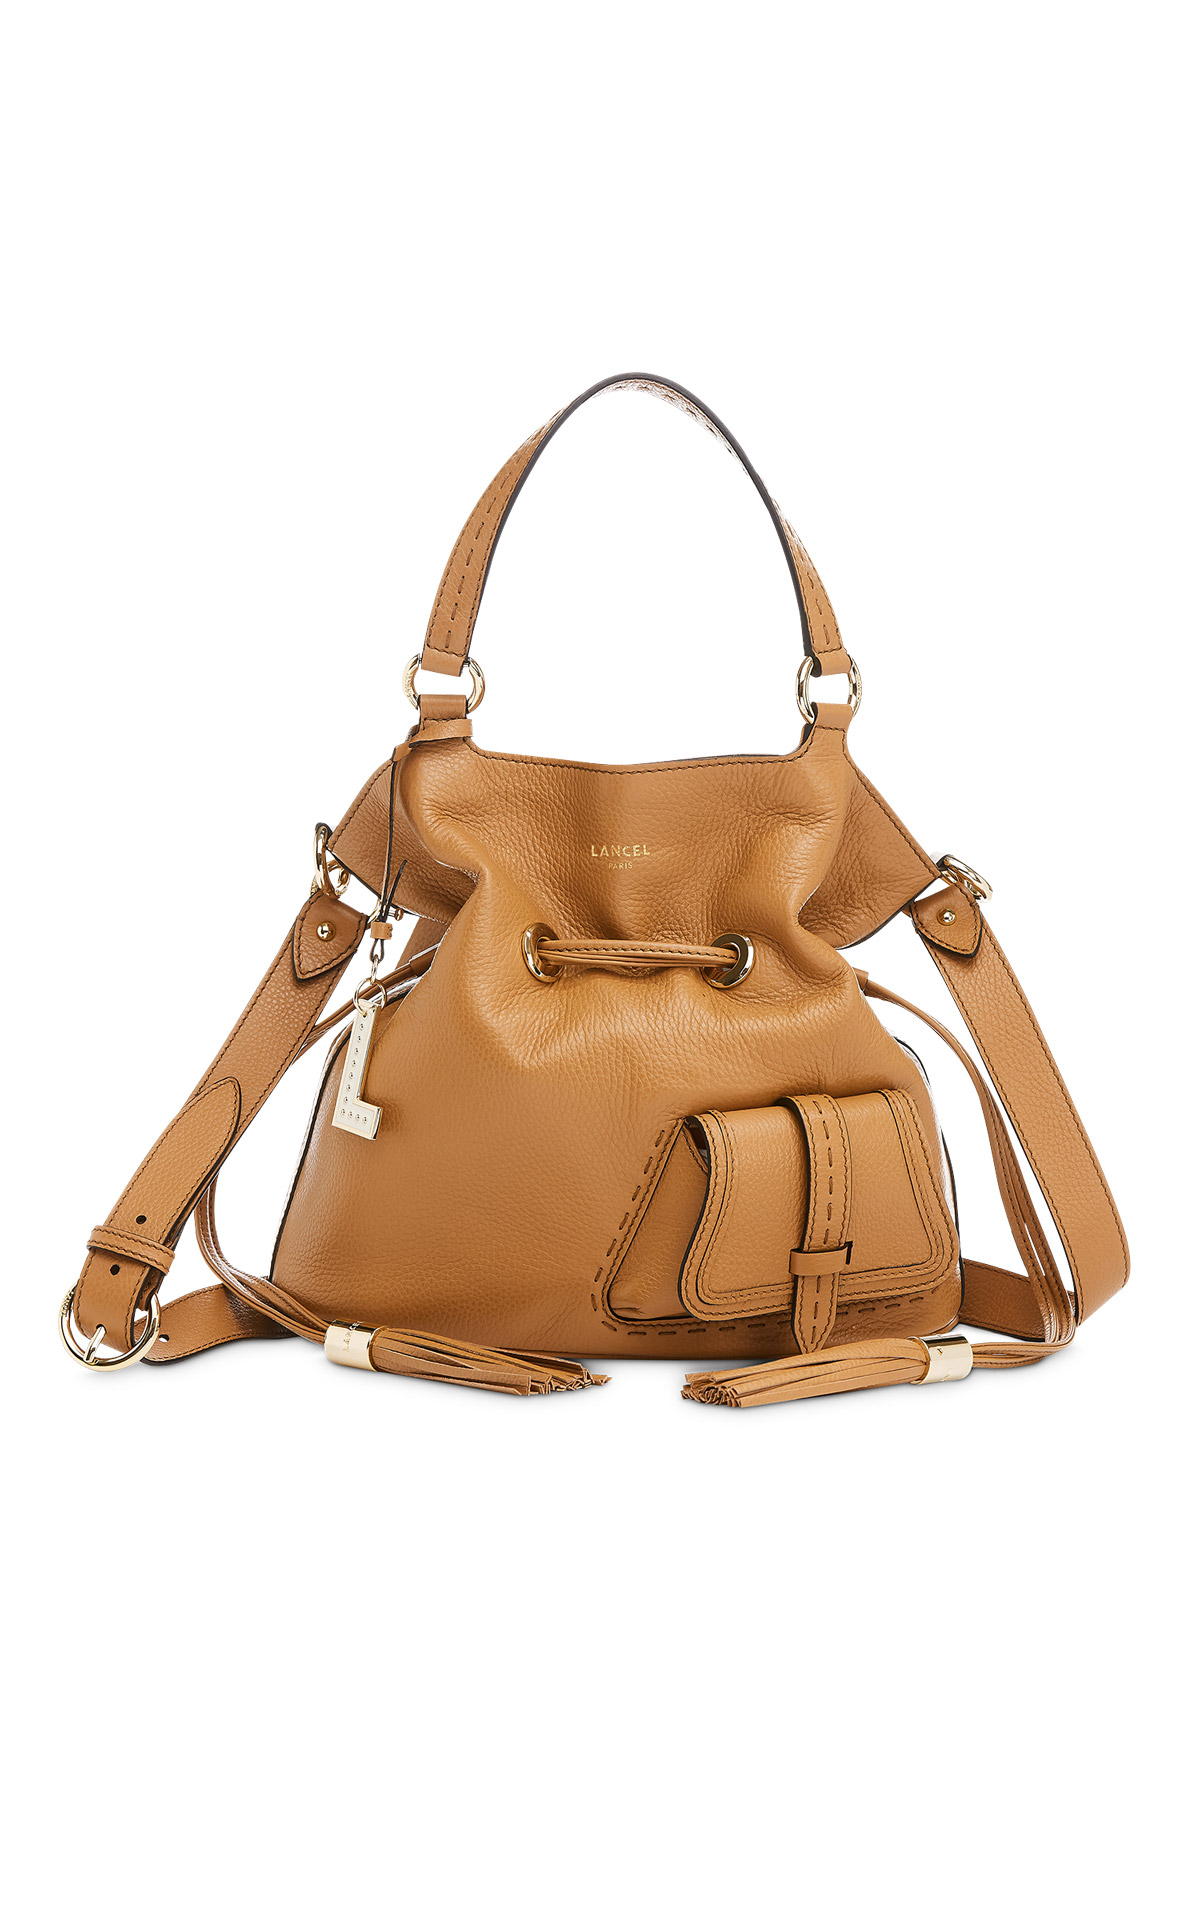 Camel bag from Lancel